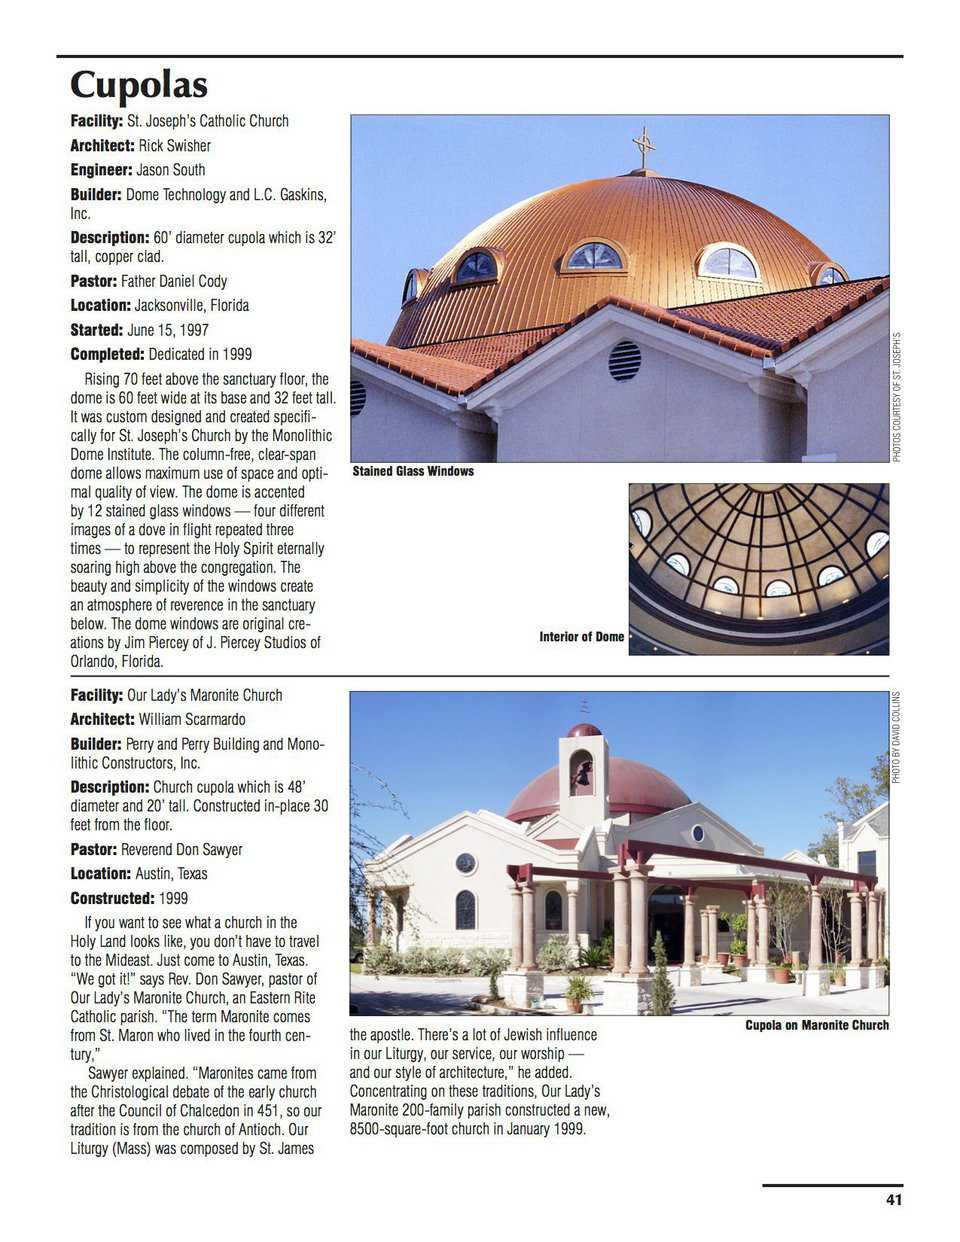 Sample pages – The Cupolas at St. Joseph's Catholic Church, Austin, Texas